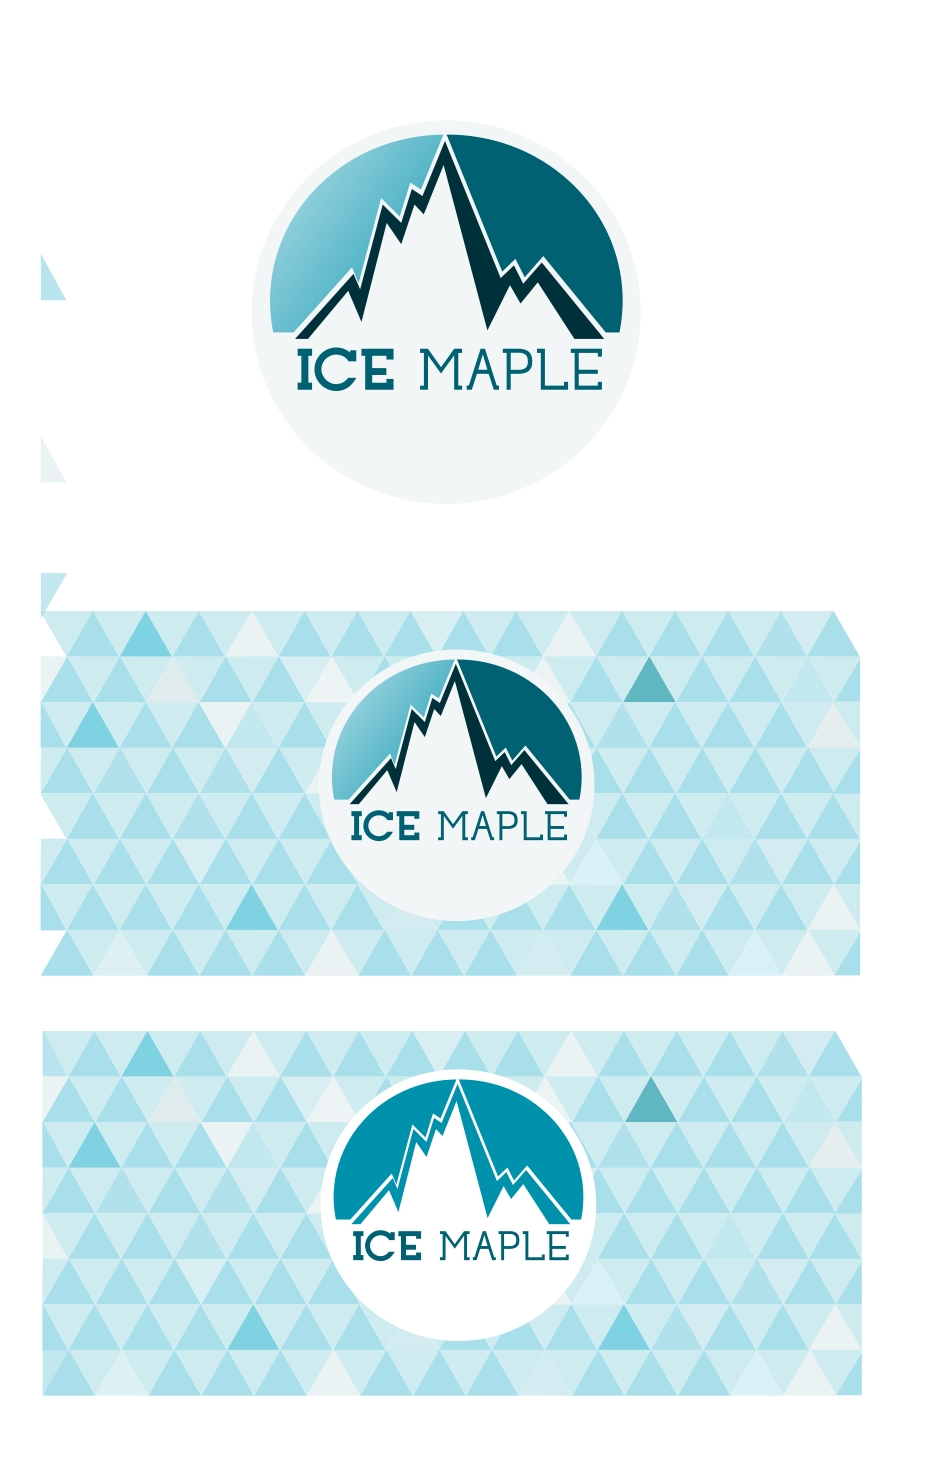 Packaging Design by Private User - Entry No. 31 in the Packaging Design Contest Unique Label/Packaging Design Wanted for Premium Bottled Water (Maple Ice).